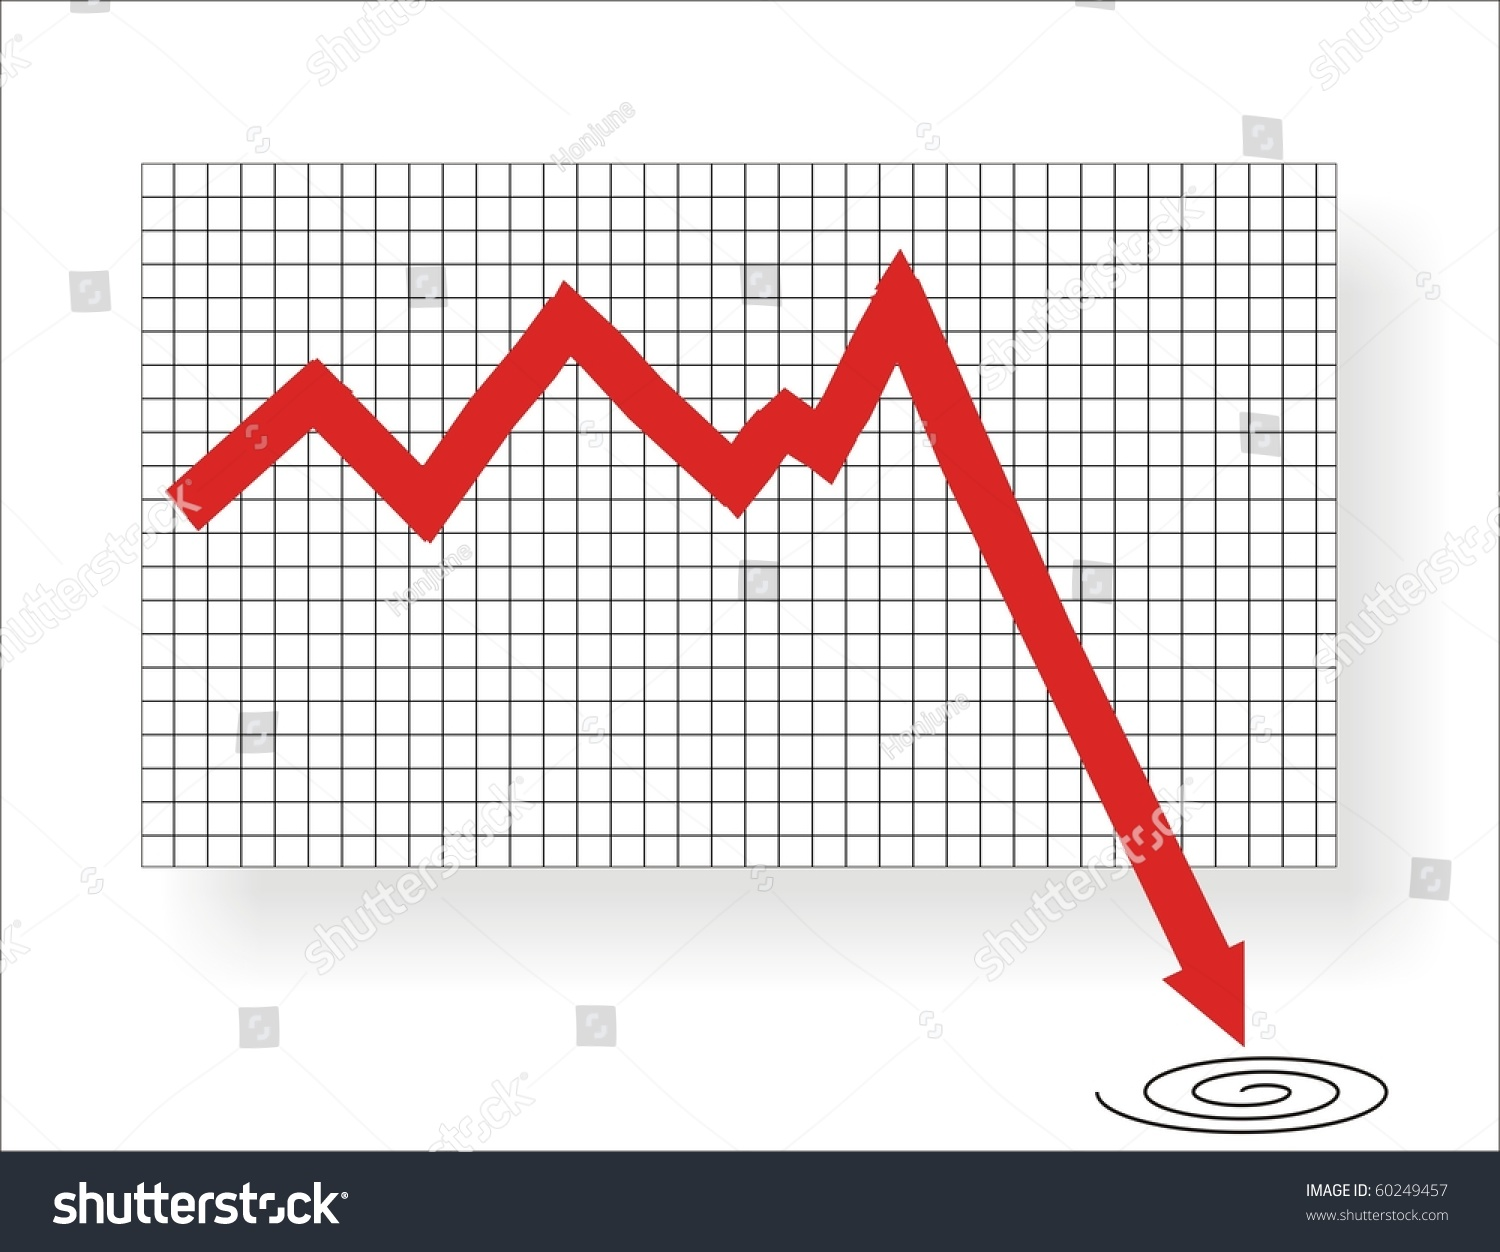 stock-photo-market-going-down-on-chart-illustration-and-concept-60249457.jpg